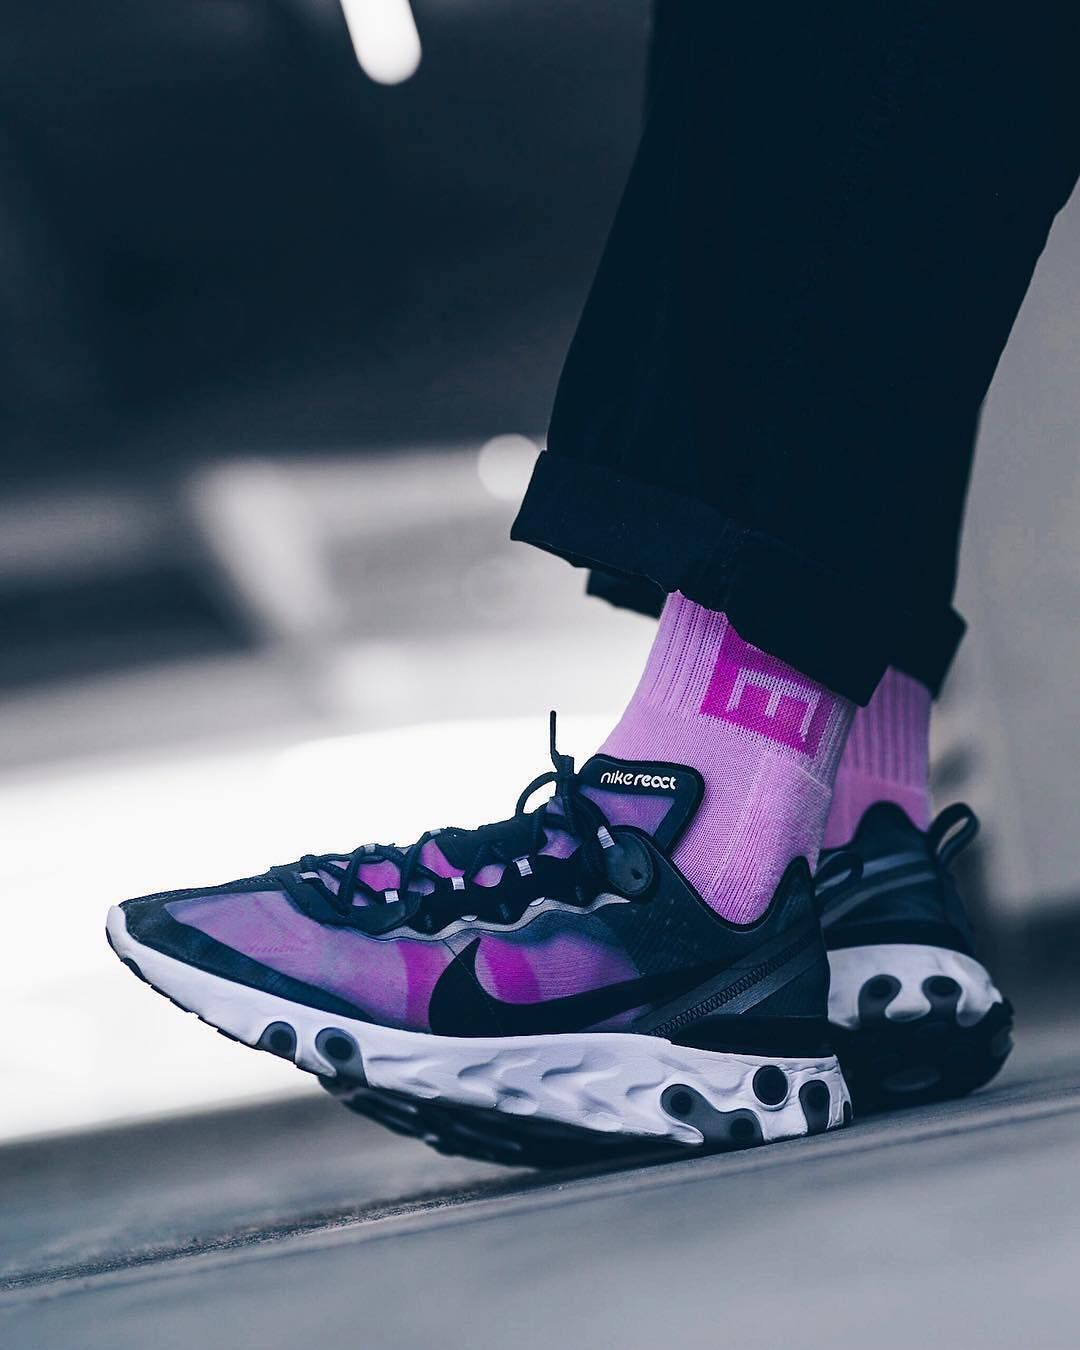 Nike React | Chaussure mode, Soulier homme, Sneakers